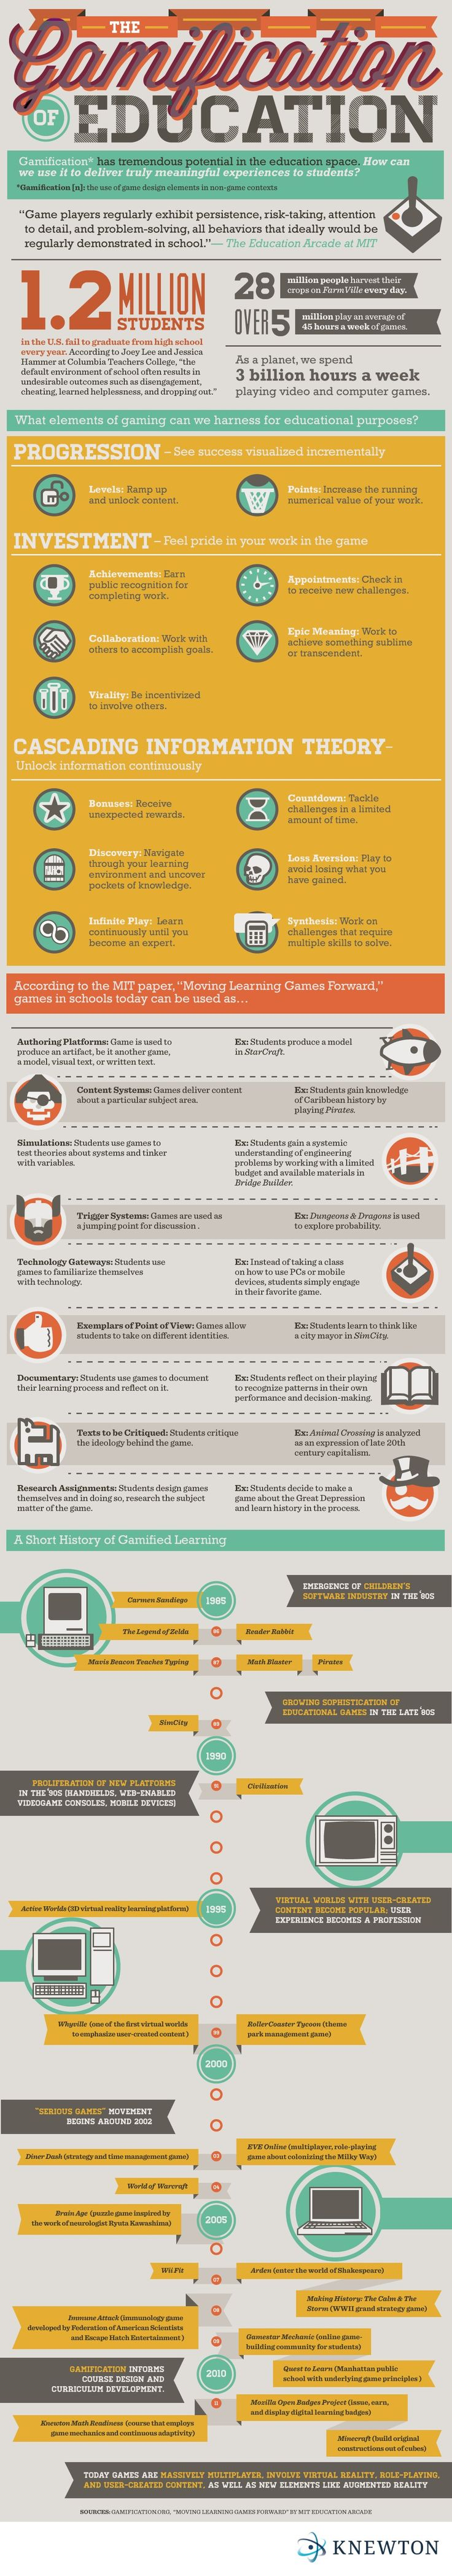 The Gamification of Education Infographic #gamification #edtech